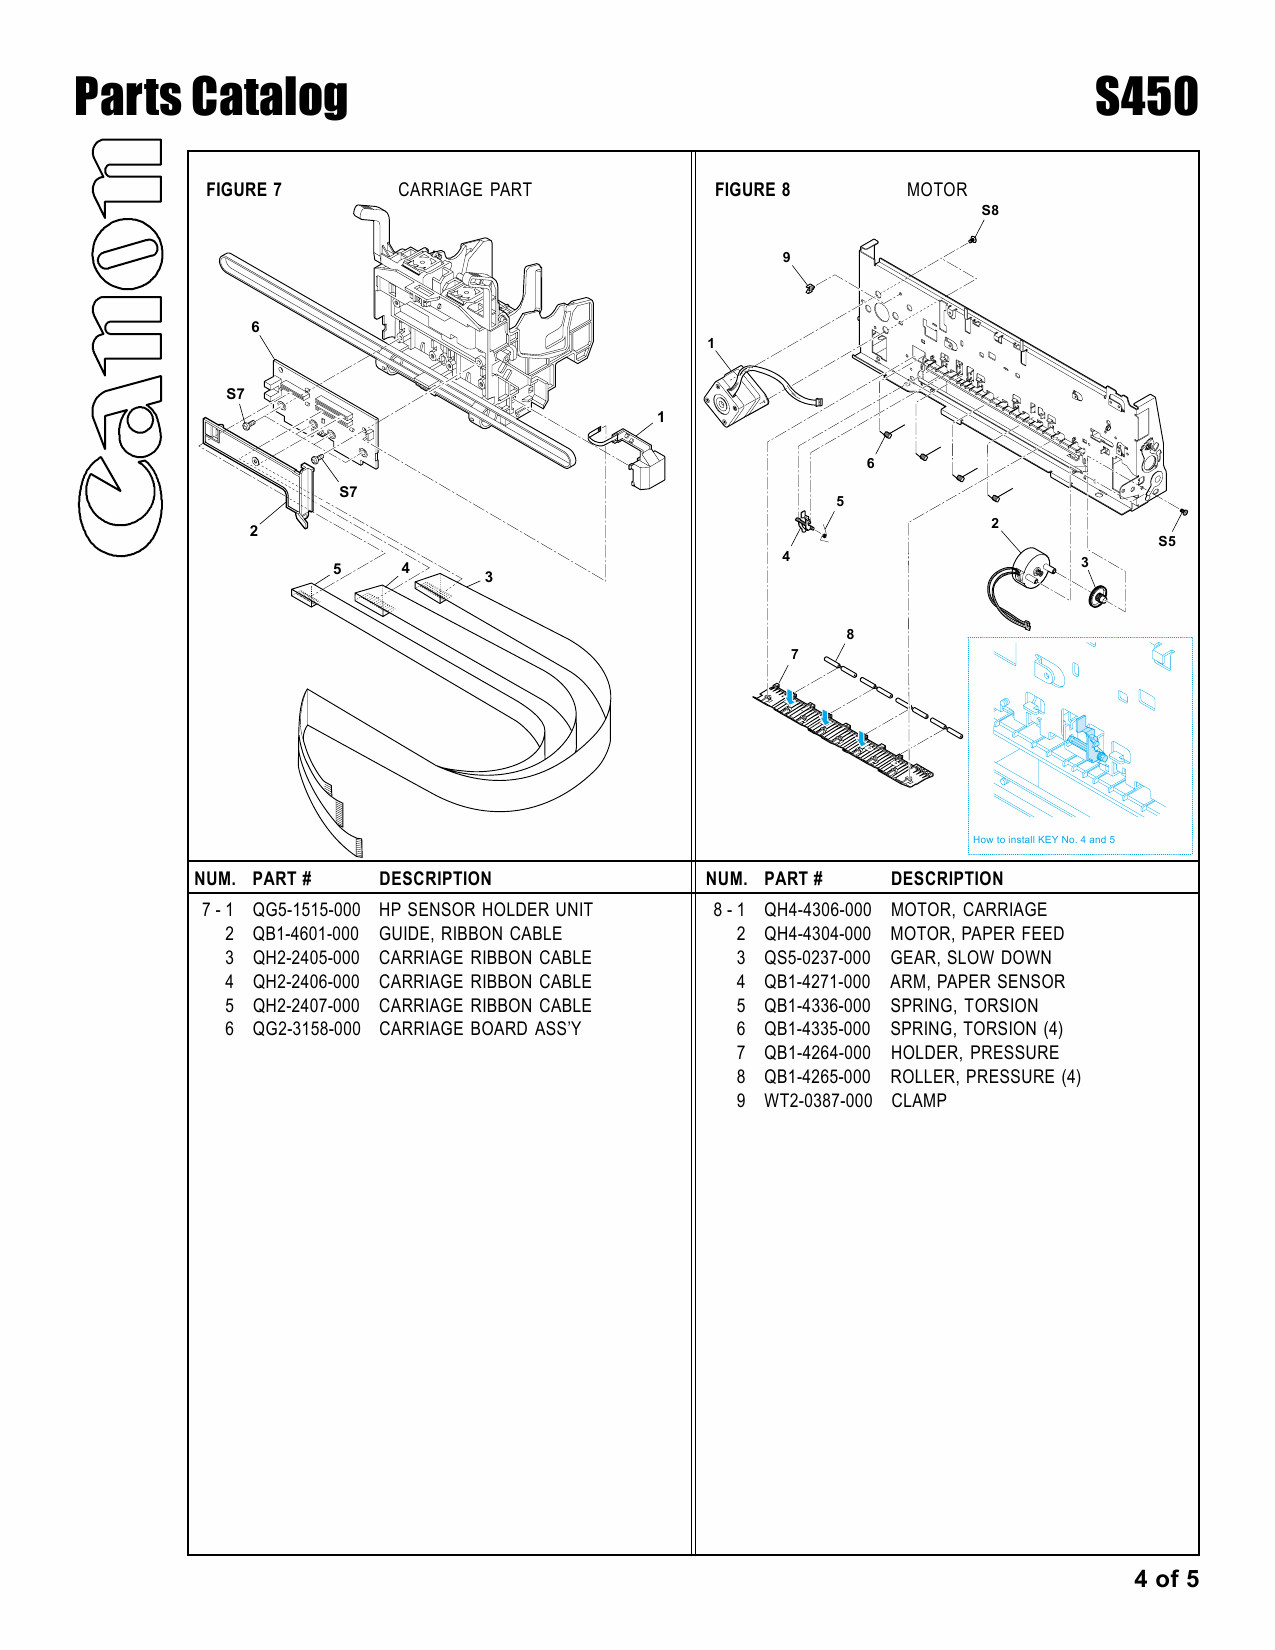 Canon PIXUS S450 Parts Catalog Manual-5